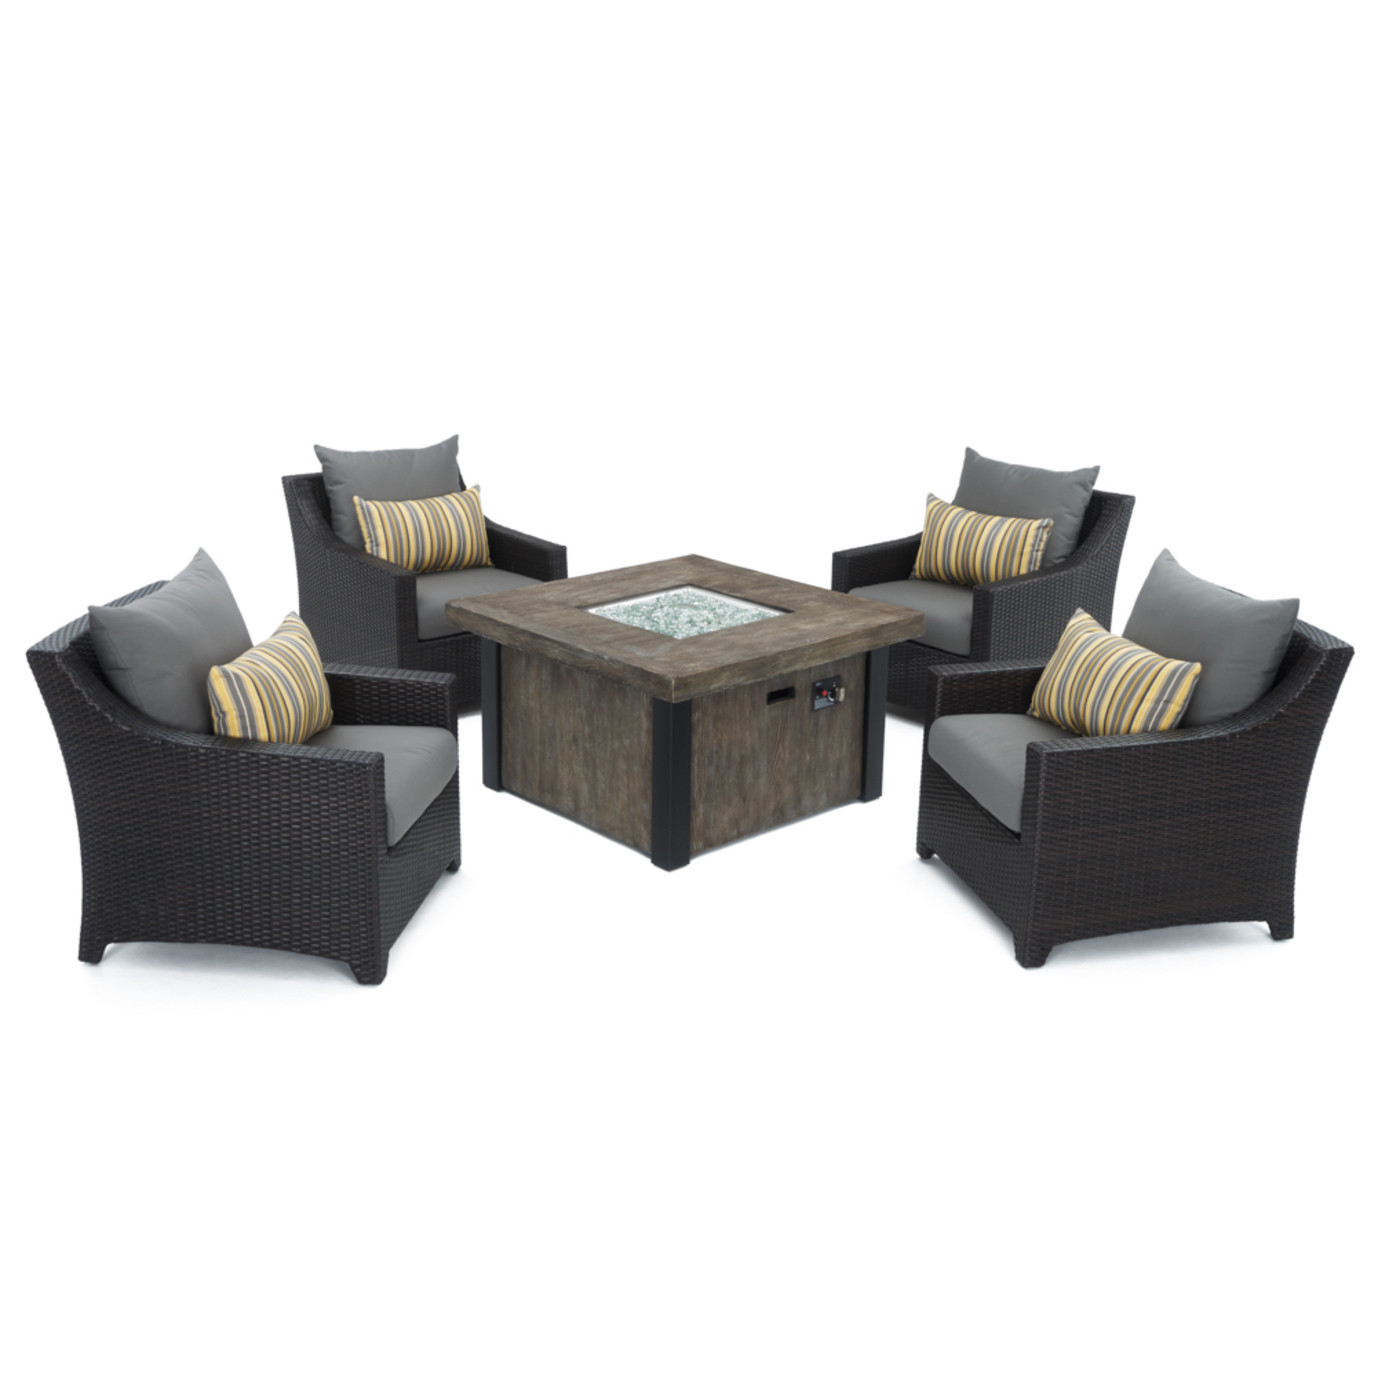 Deco™ 5pc Fire Chat Set- Charcoal Gray